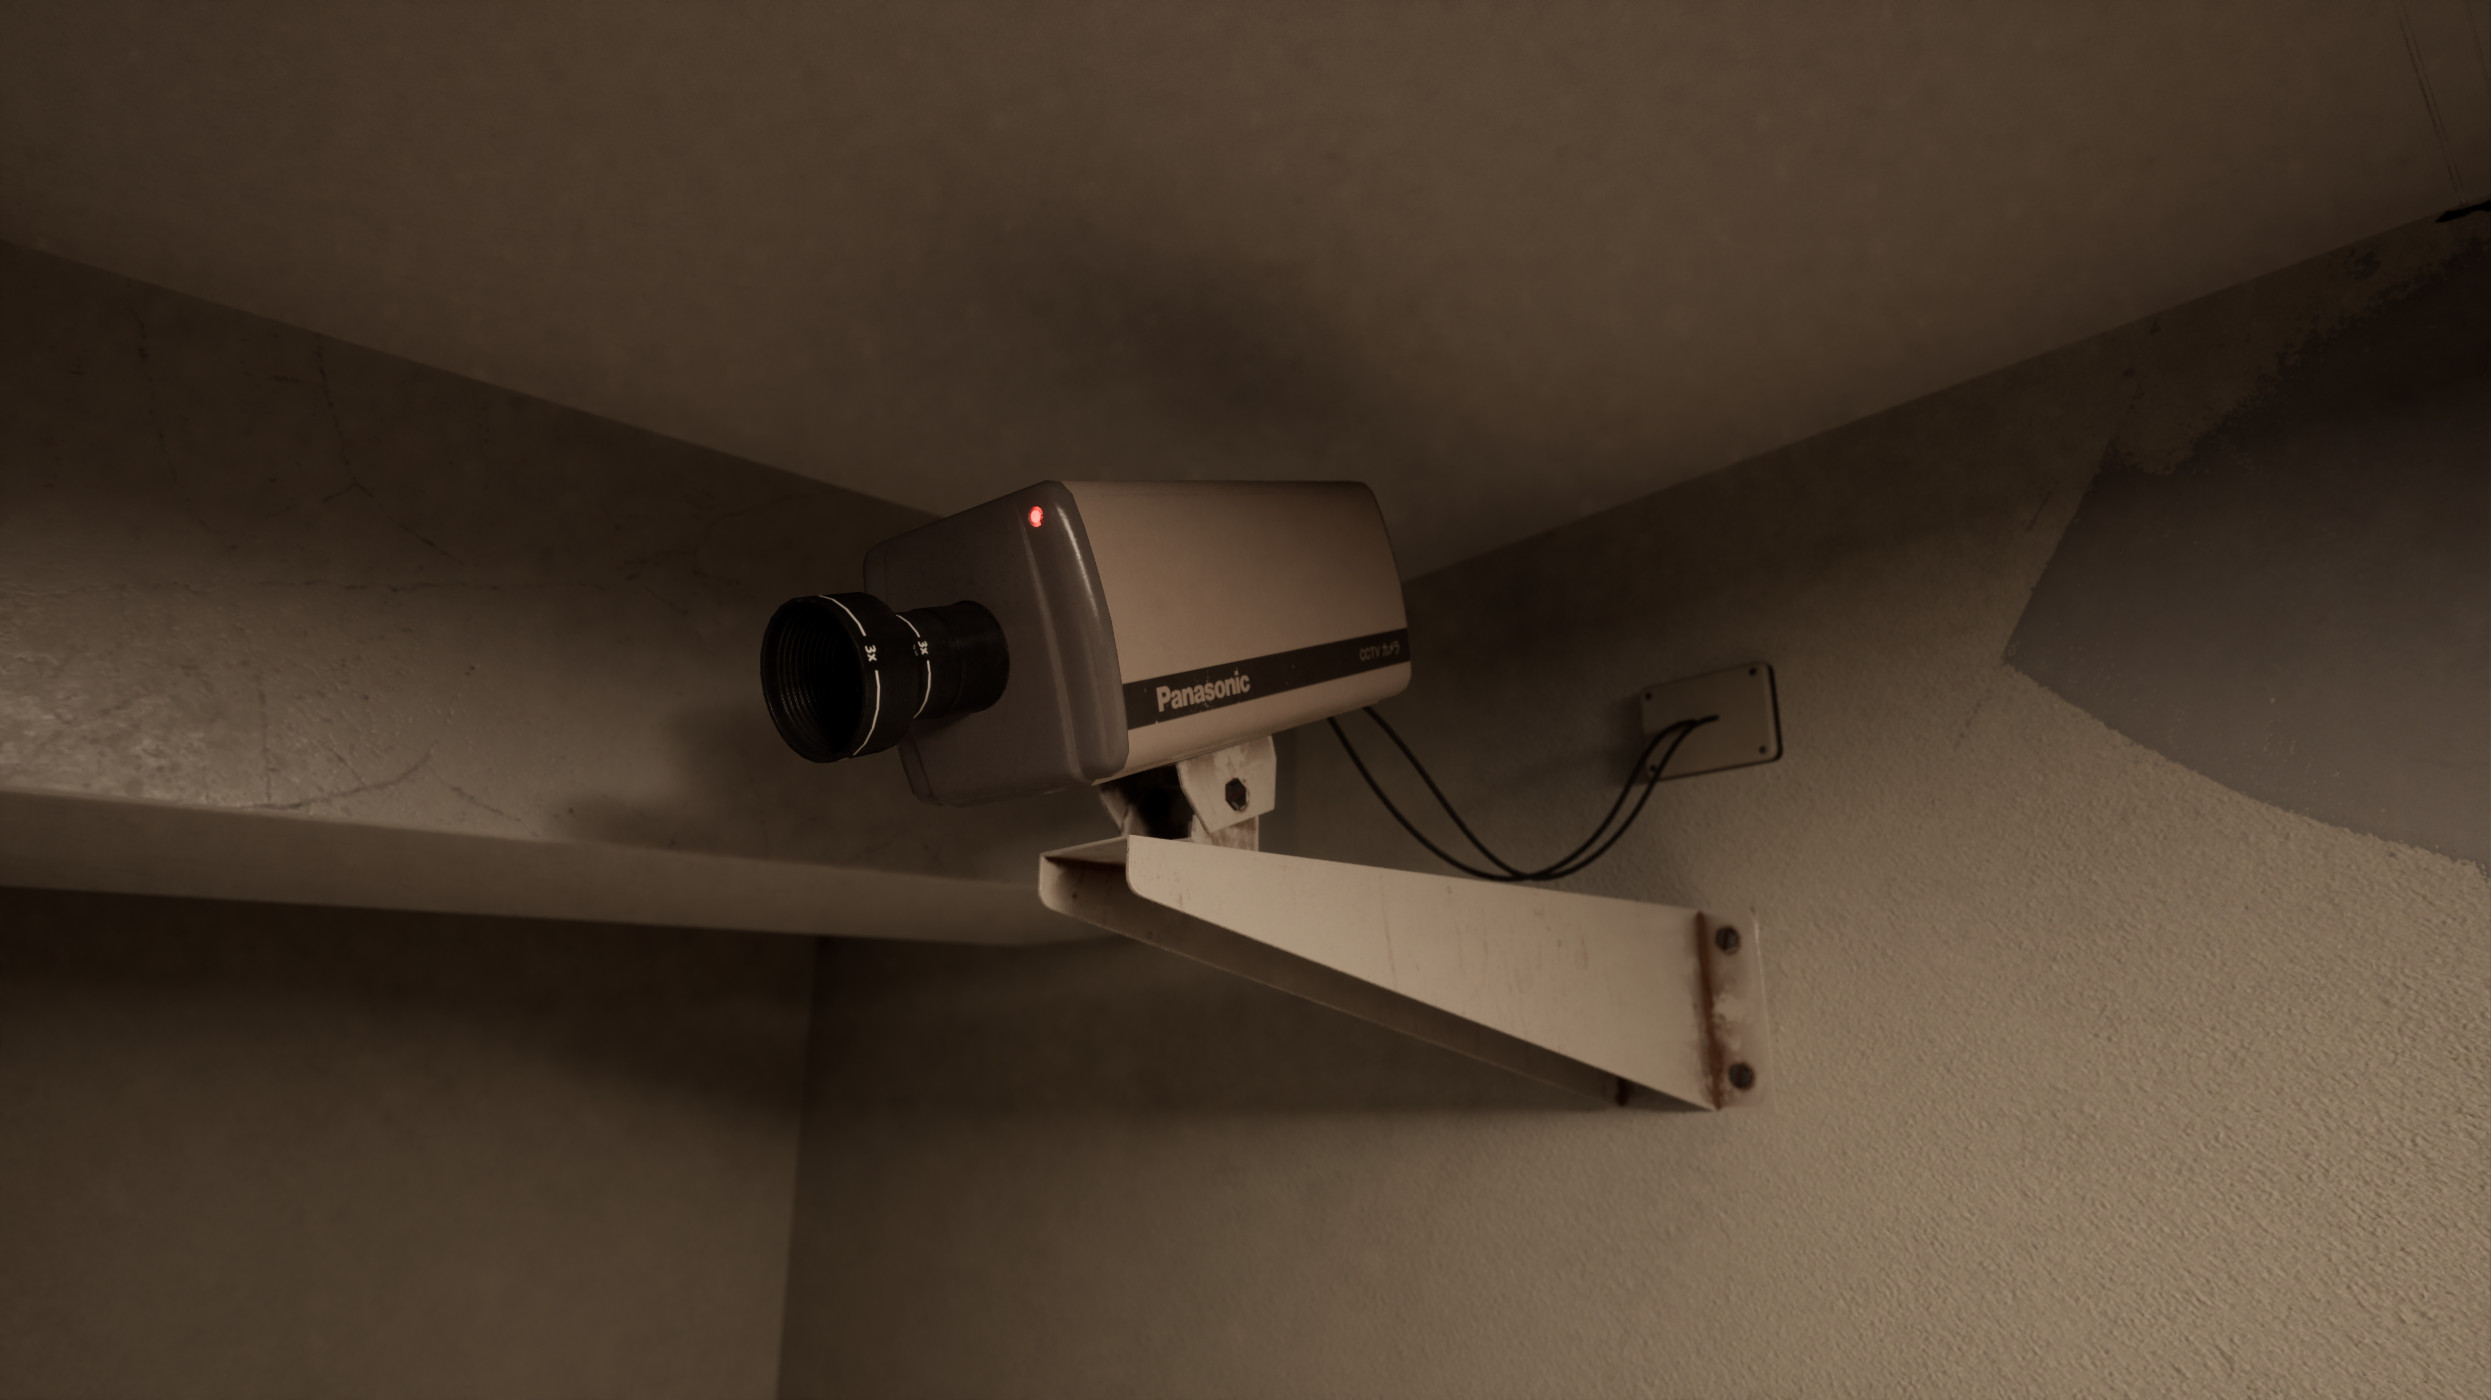 Security Camera based on an old Panasonic CCTV camera